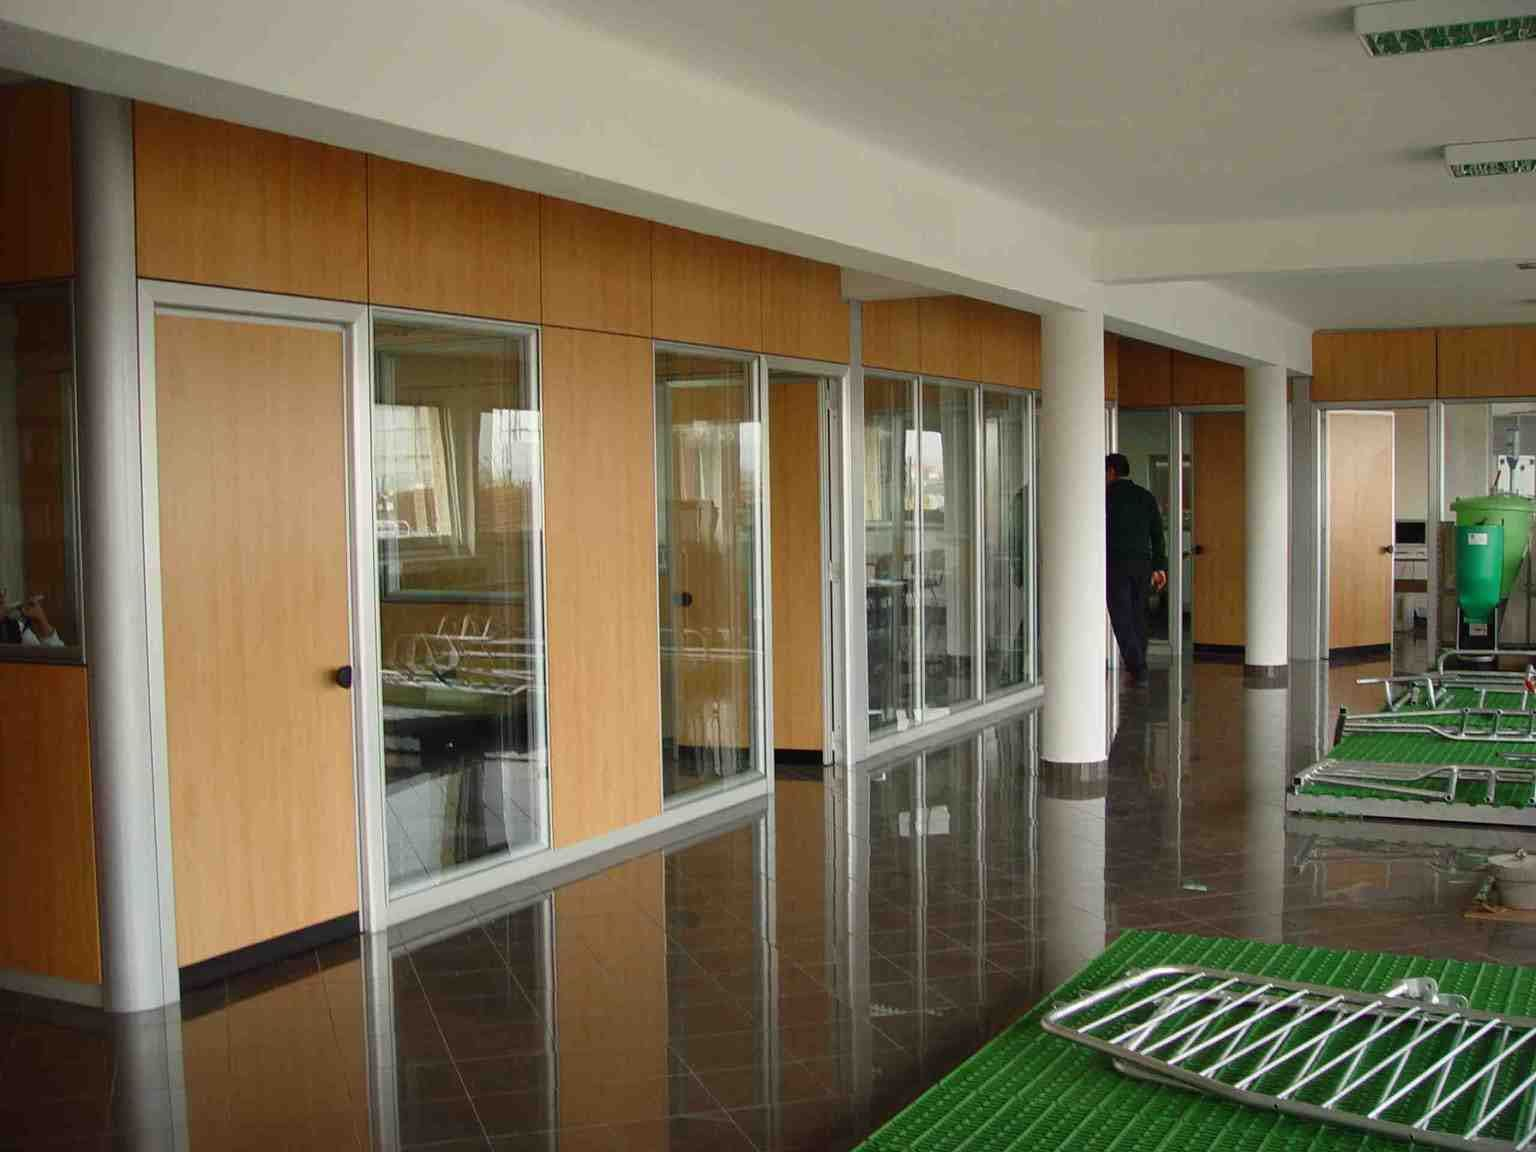 wood office partitions. Office Divider Walls Transparent Glass And Solid Wood Room Dividers Partitions F